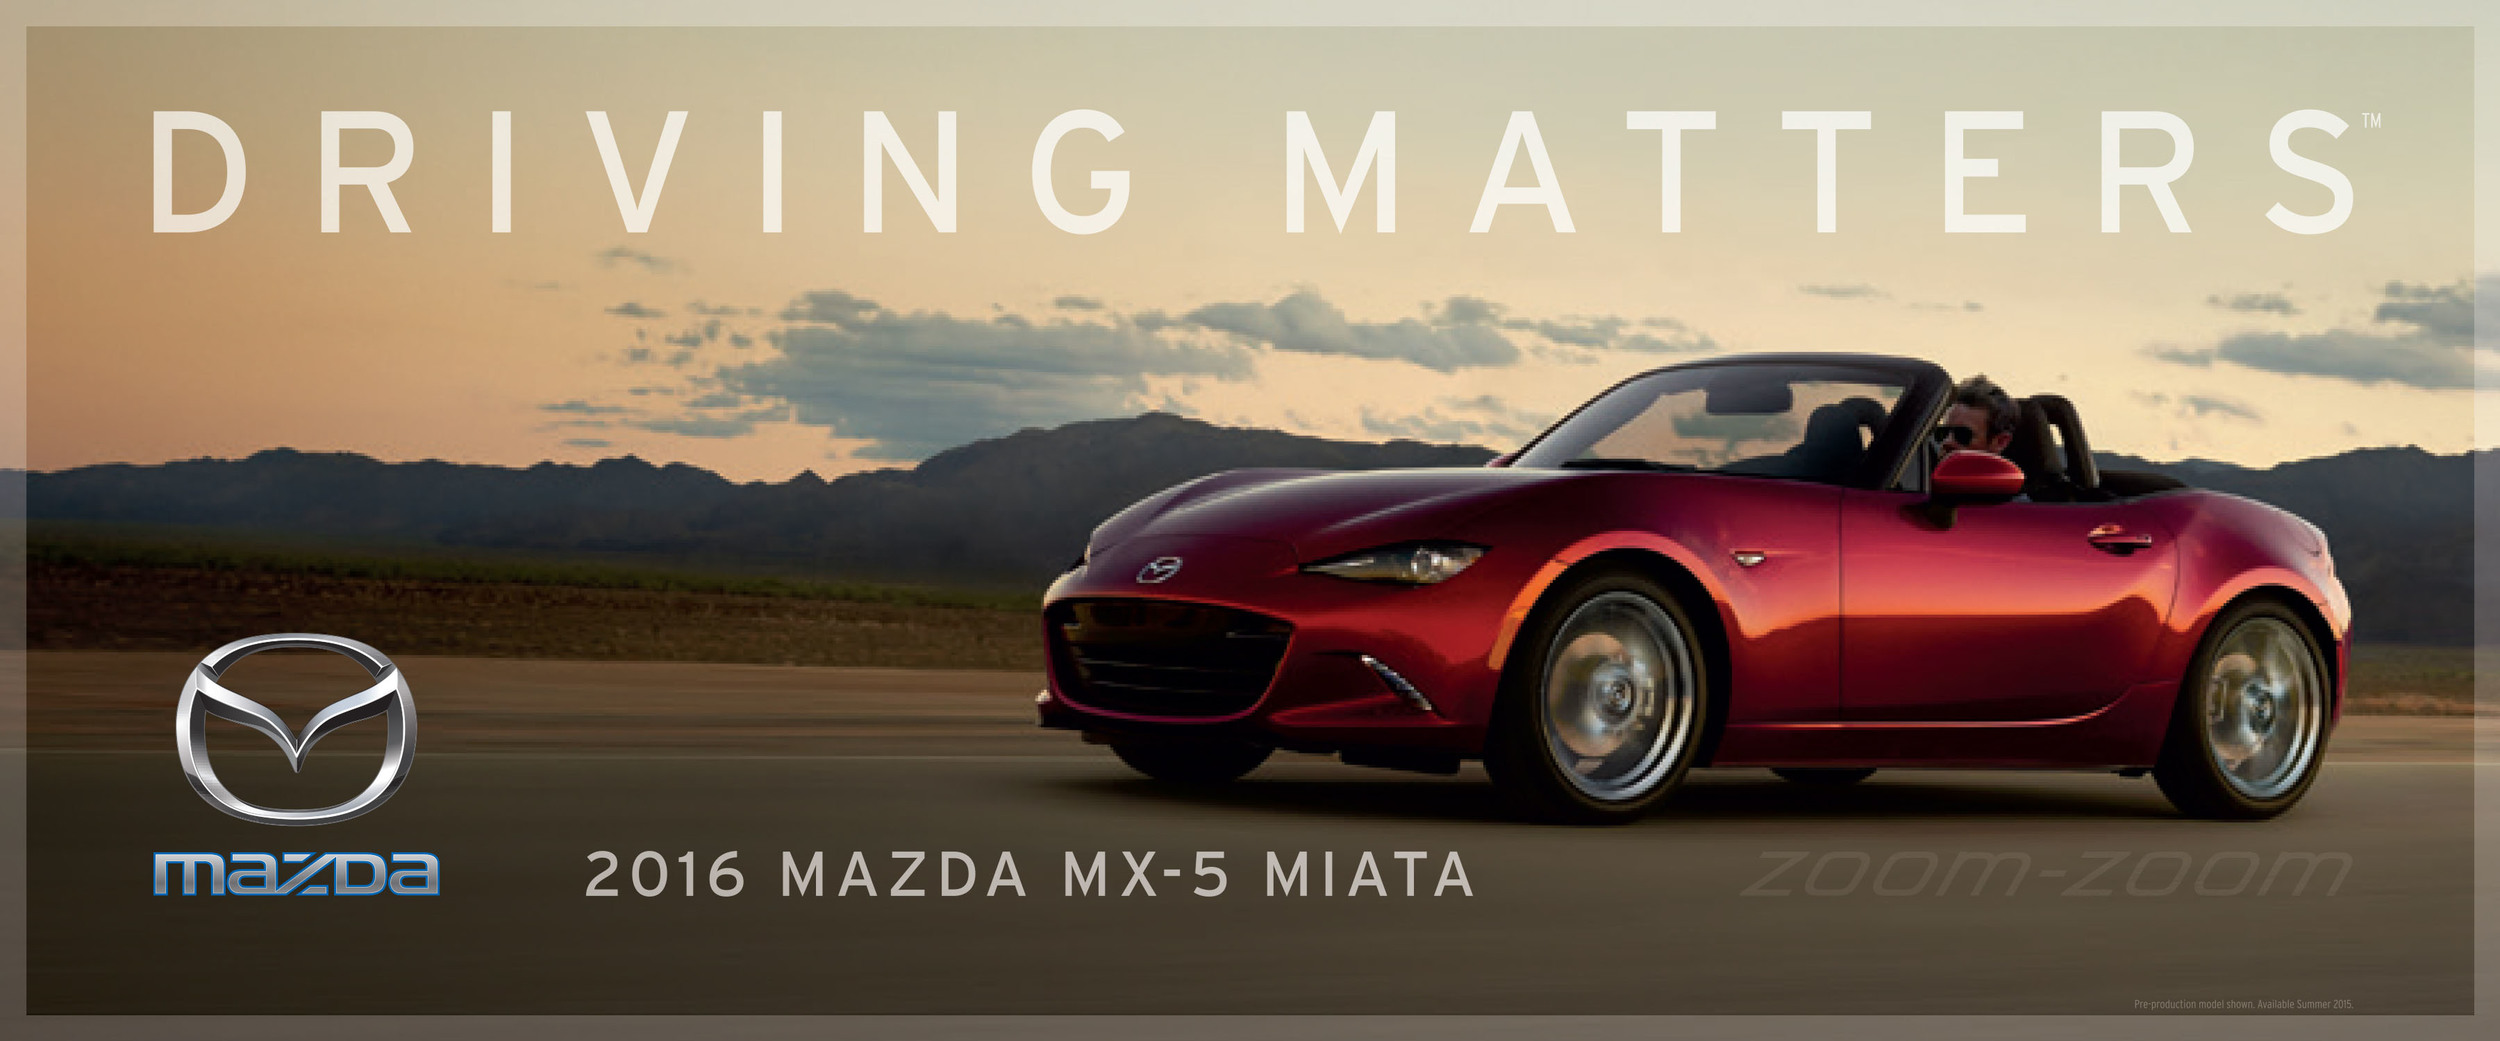 "Bmw North America >> Mazda zooms in with new company slogan: ""Driving Matters"" - Autos.ca"